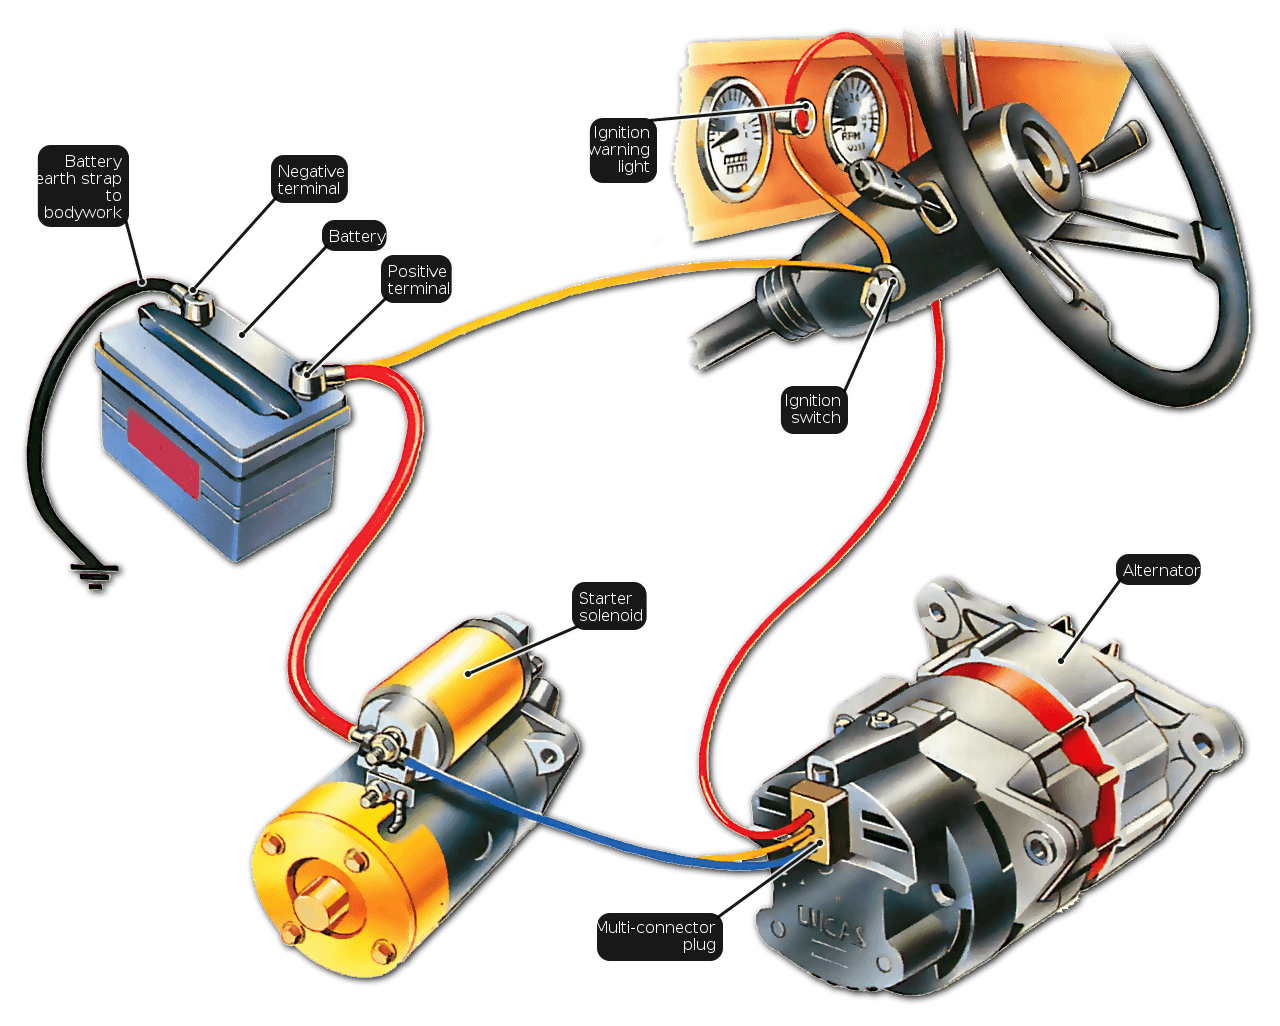 36 Volt Ez Go Golf Cart Wiring Diagram as well Watch also Gmc Lifted furthermore Ezgo Schematic Diagram furthermore Ac Condenser Fan Motor Wiring Diagram. on hyundai golf cart wiring diagram